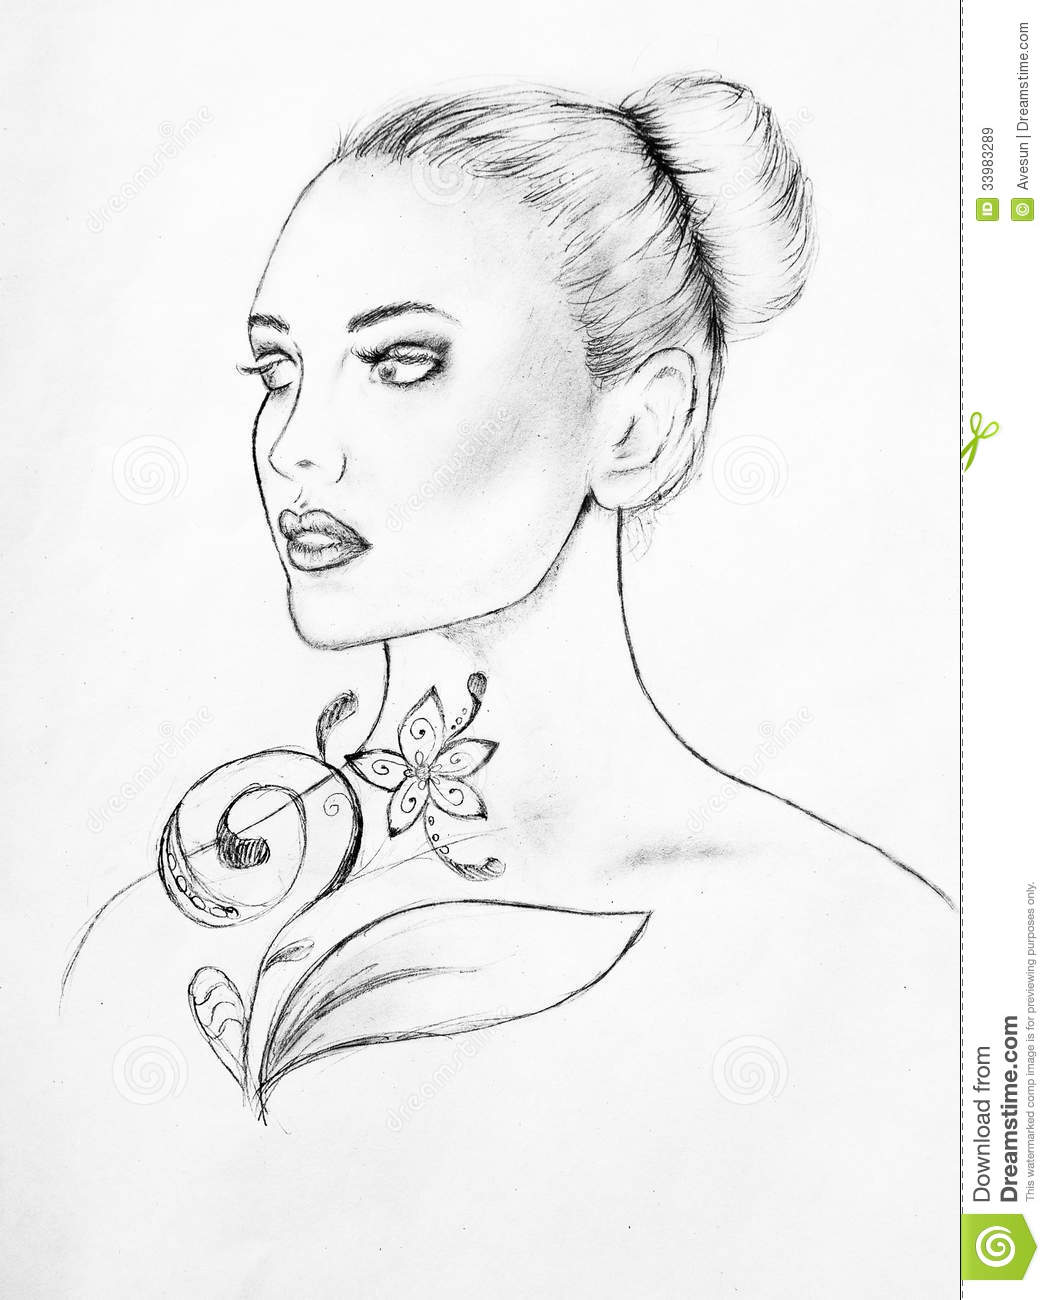 Woman S Face Line Drawing : Woman face lineart sketch stock illustration image of